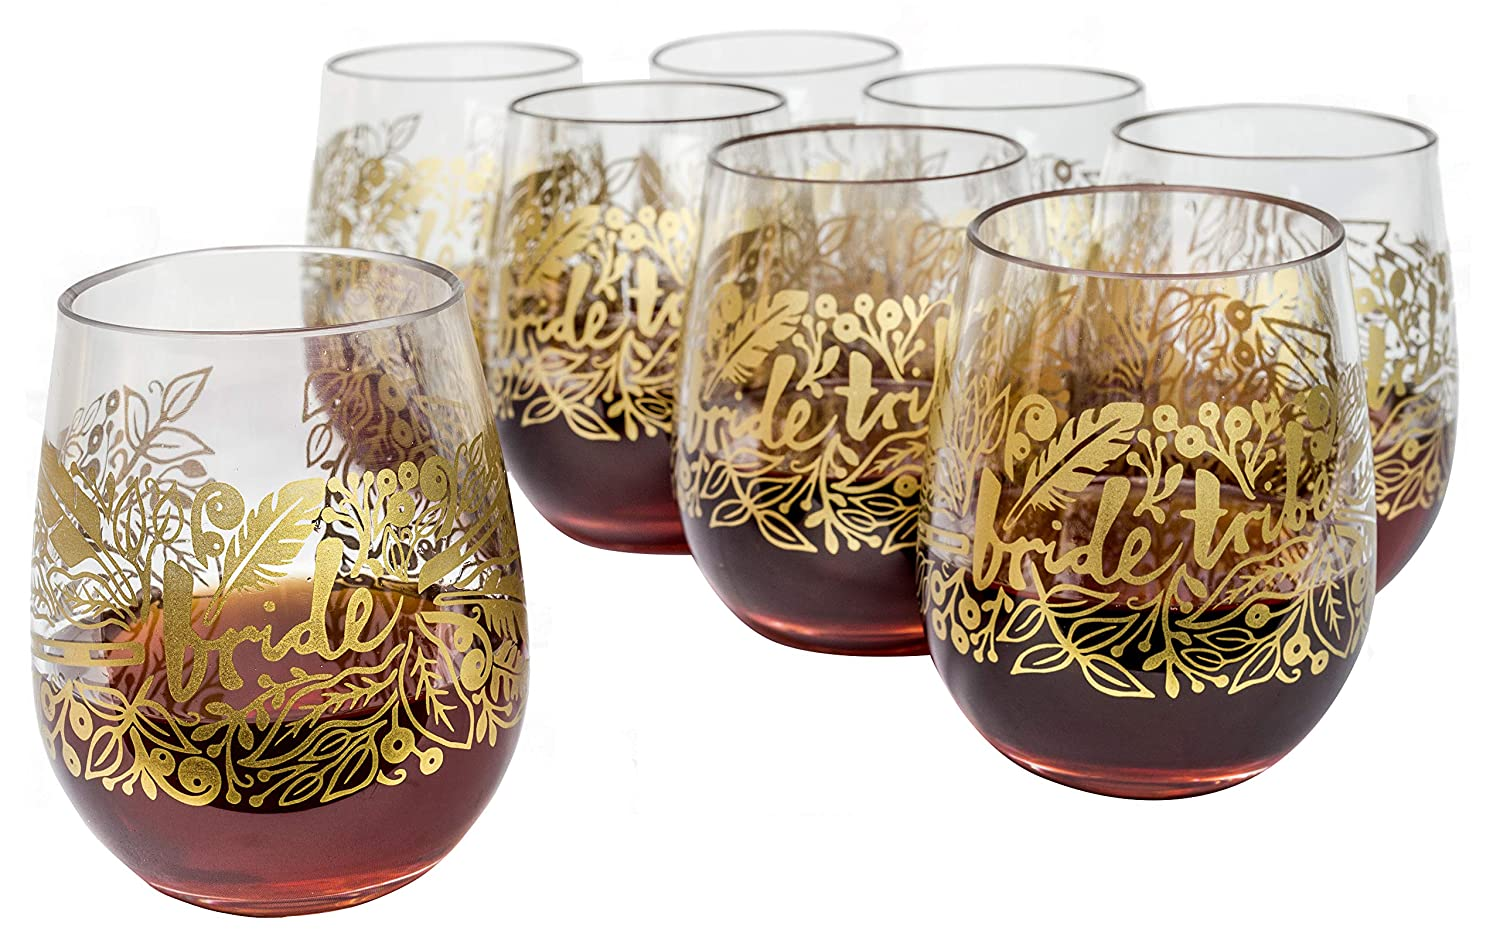 Bride Tribe Reusable Plastic Stemless Wine Glasses by Narwhal Party - Set of 8 Glasses is Perfect for Bachelorette Parties, Bridesmaid Gifts, and Bridal Party Favors